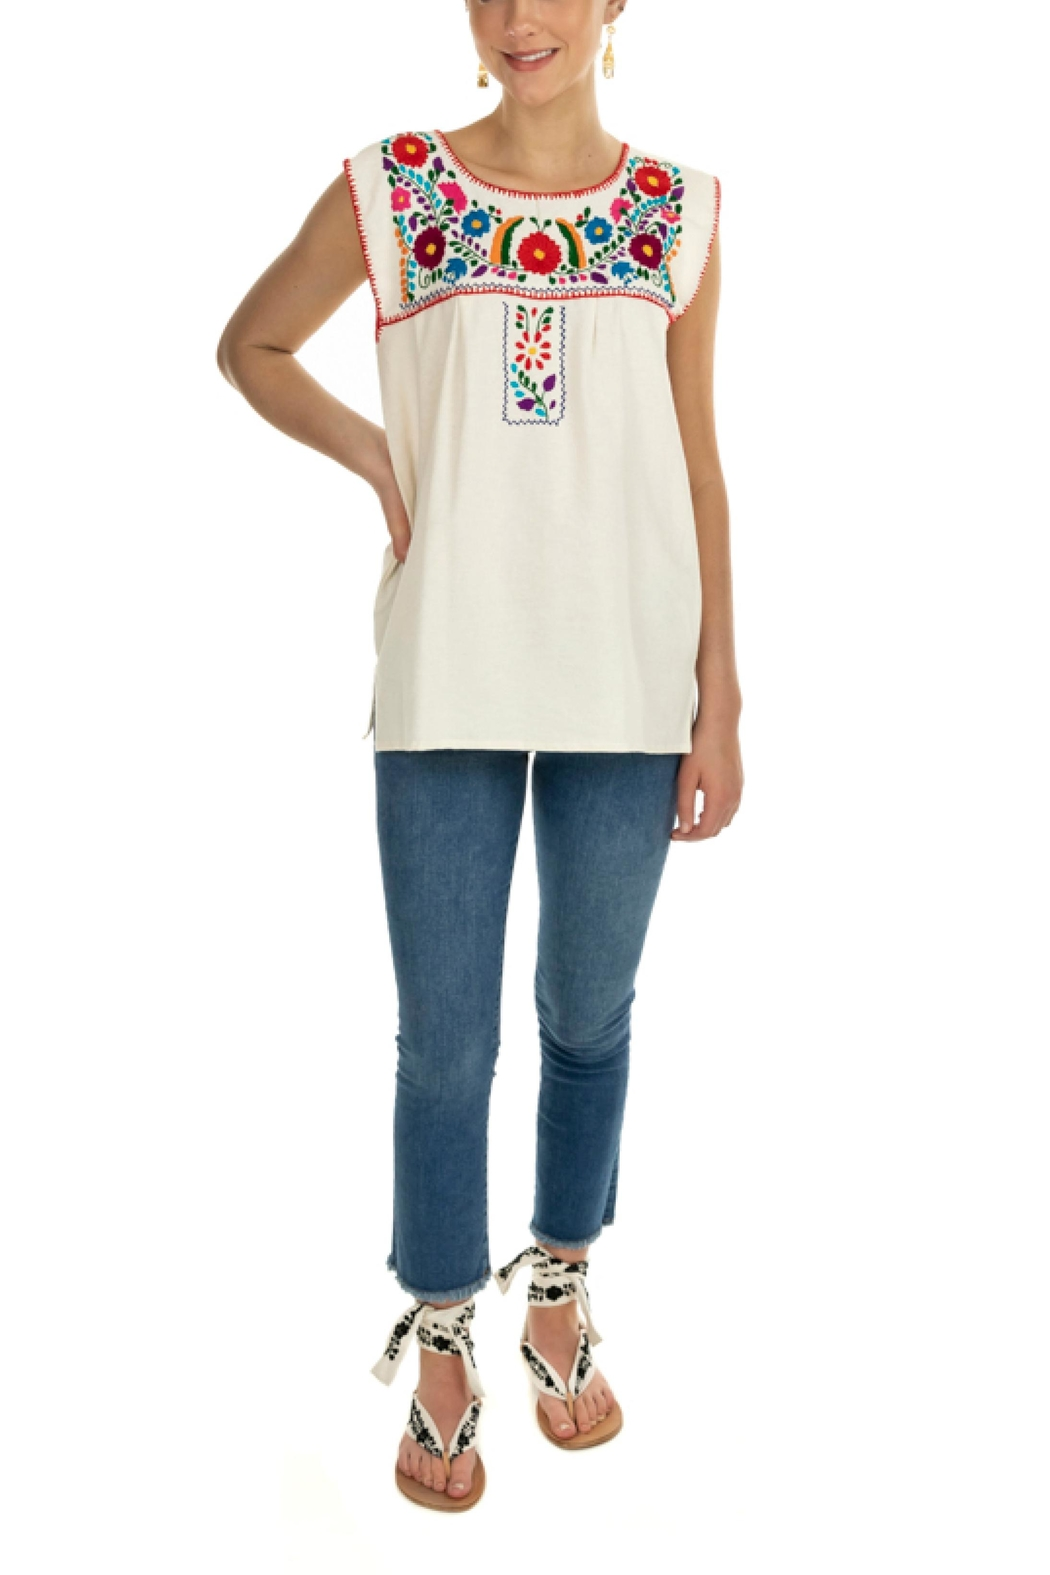 Nativa Xochitl Women's Blouse - Front Cropped Image